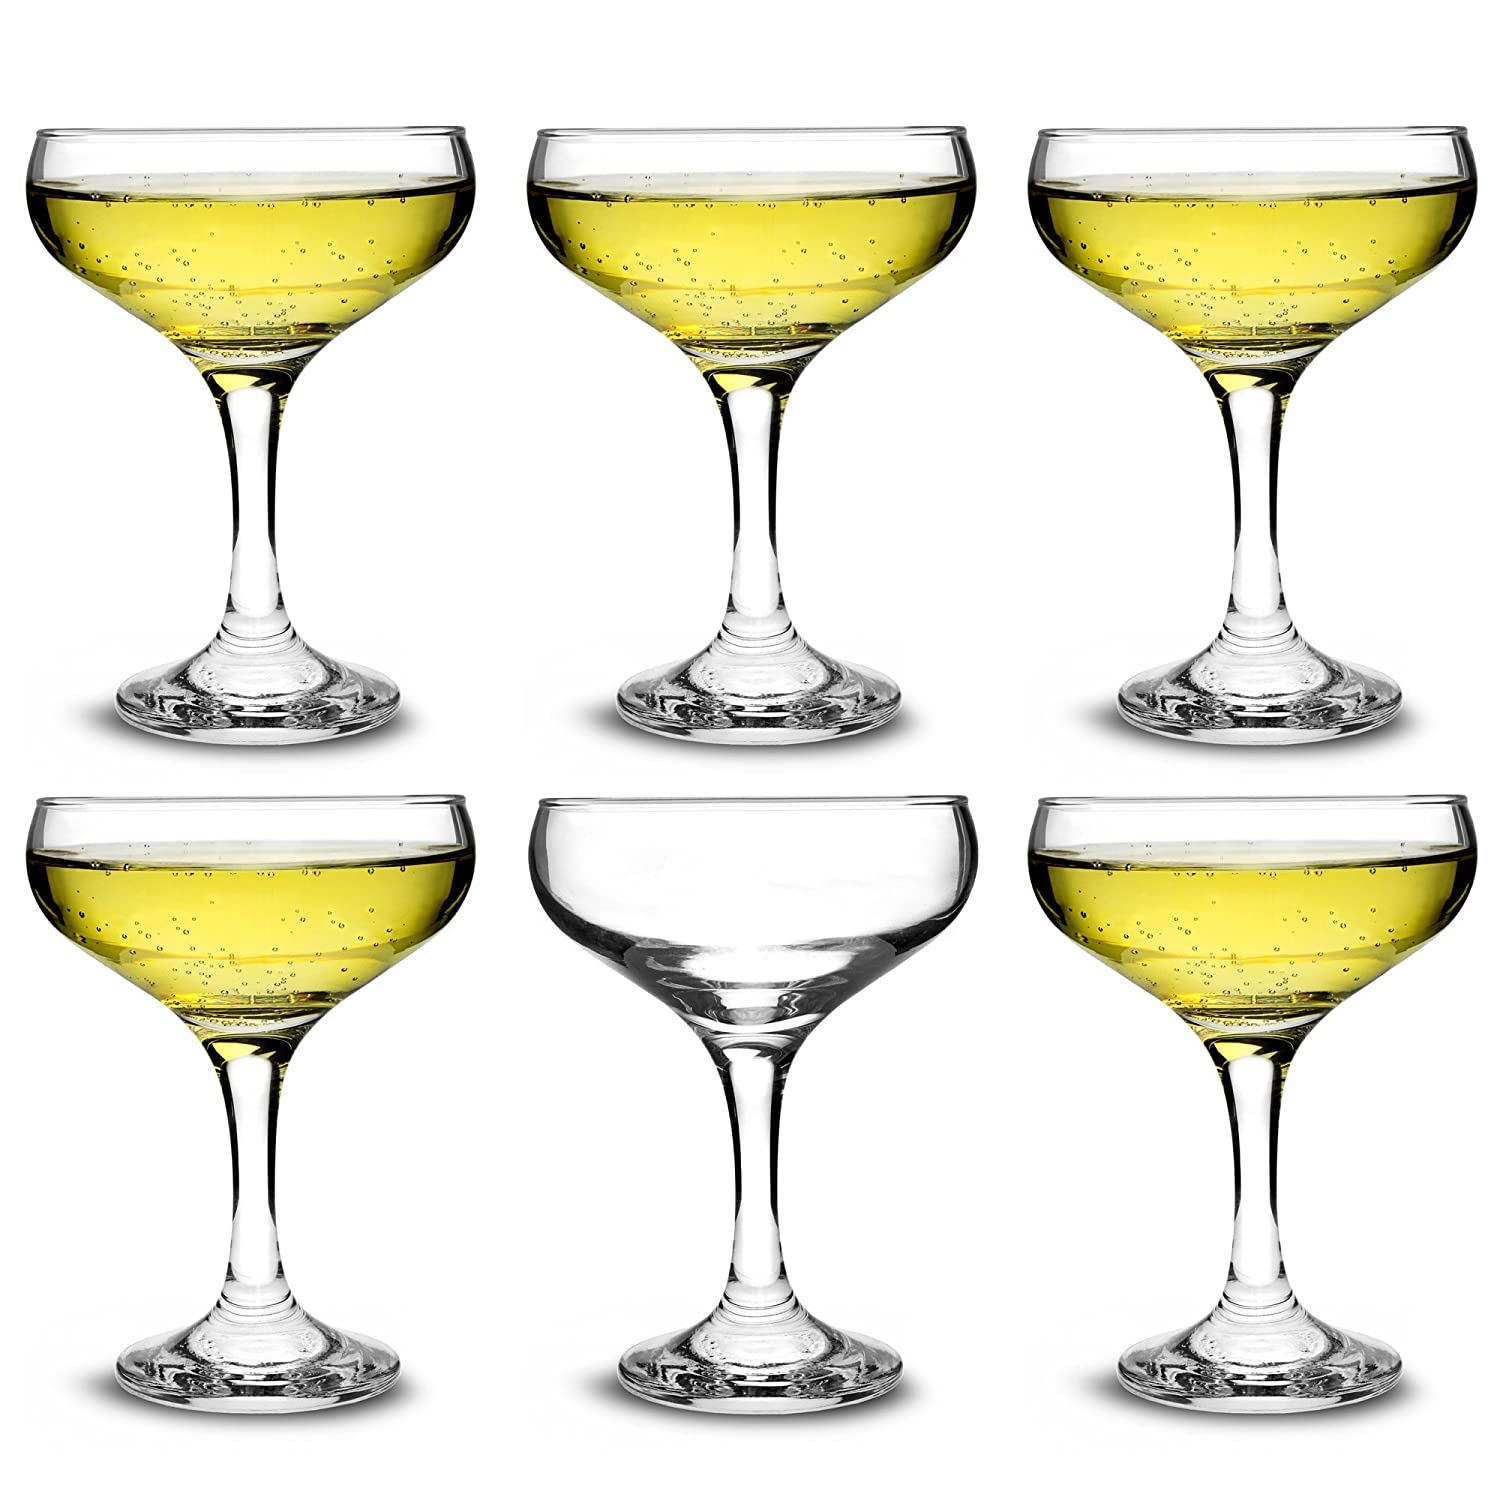 City Champagne Coupe Glasses 7oz / 200ml - Set of 6 - Elegant Gift Boxed Cocktail Coupe Glasses